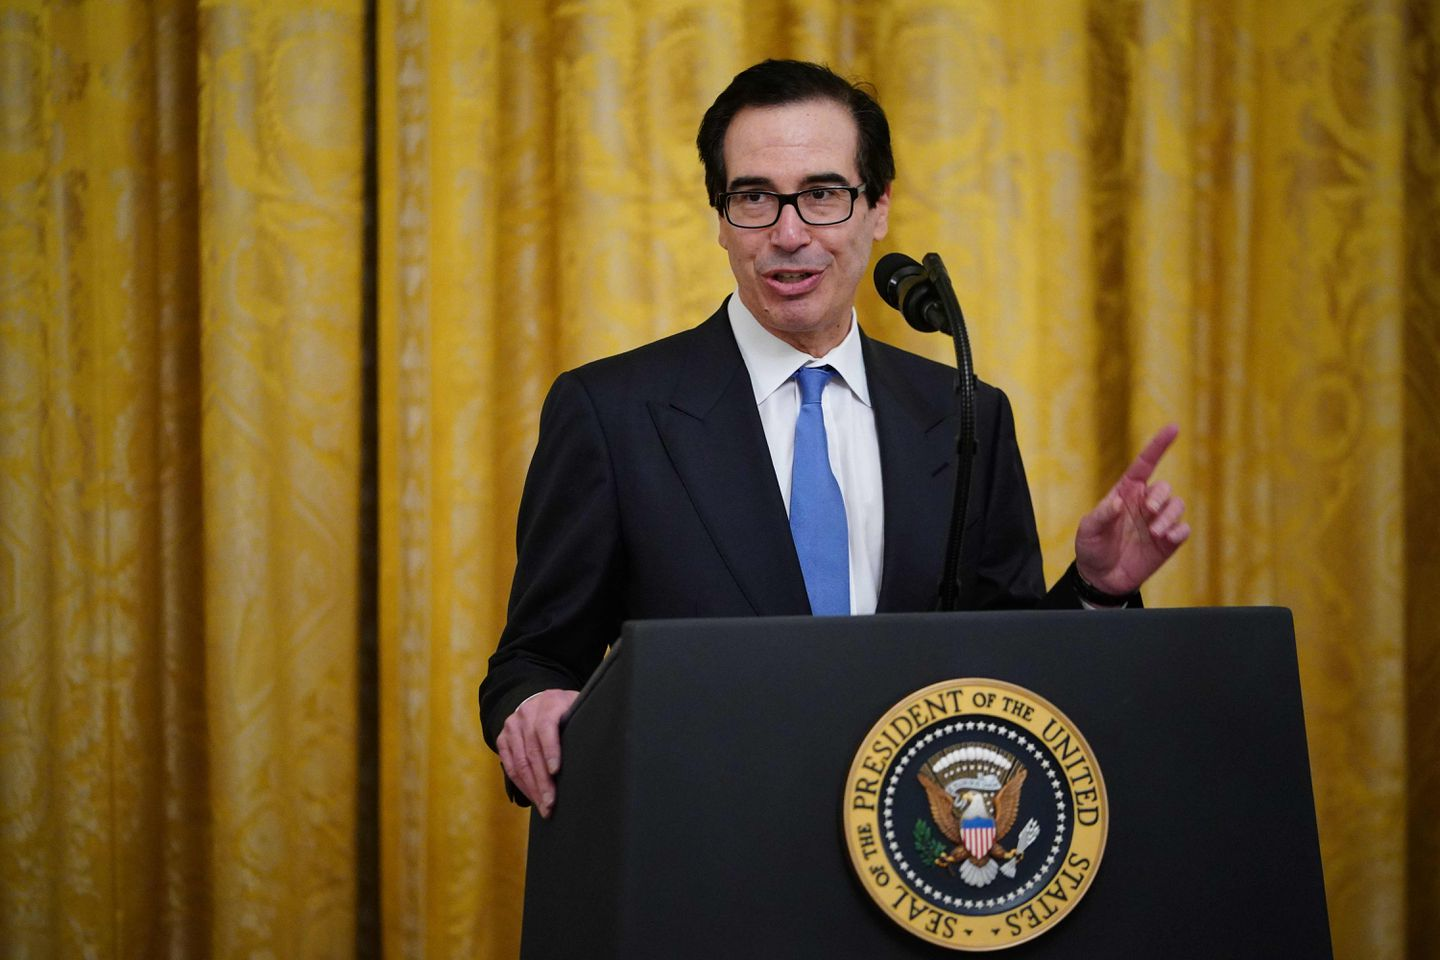 Treasury Secretary Steven Mnuchin says the federal government plans to audit all loans over $2 million before it forgives them.